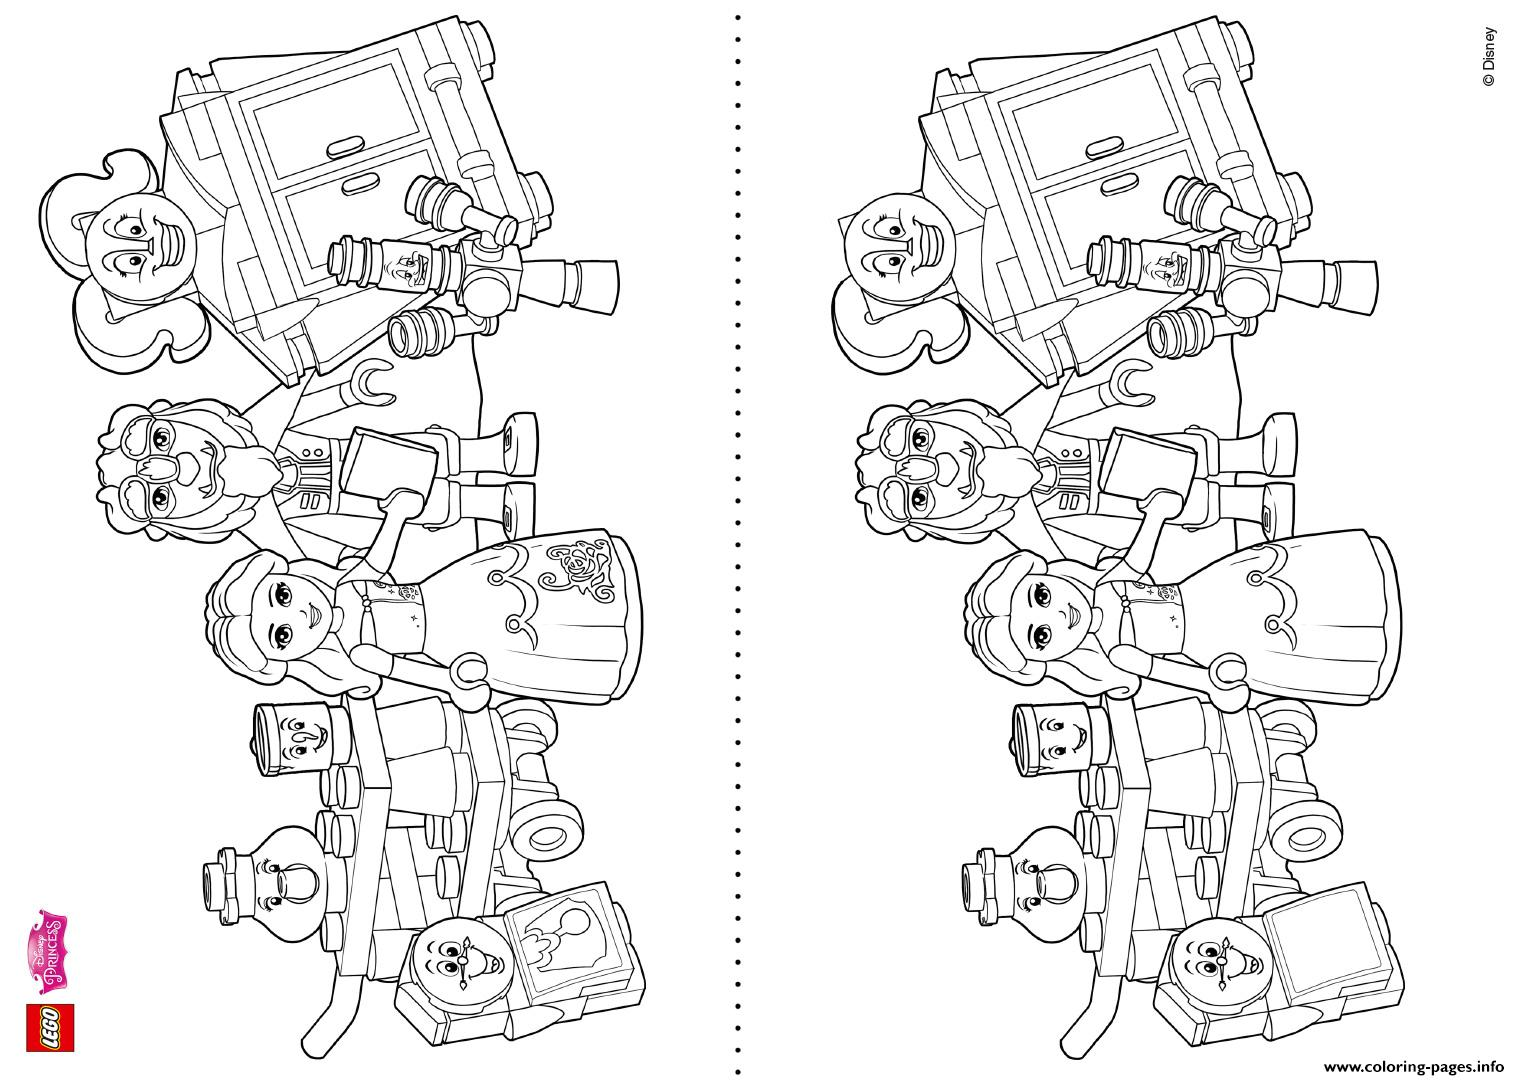 Disney Lego Coloring Pages : Coloring fun with beauty and the beast lego disney